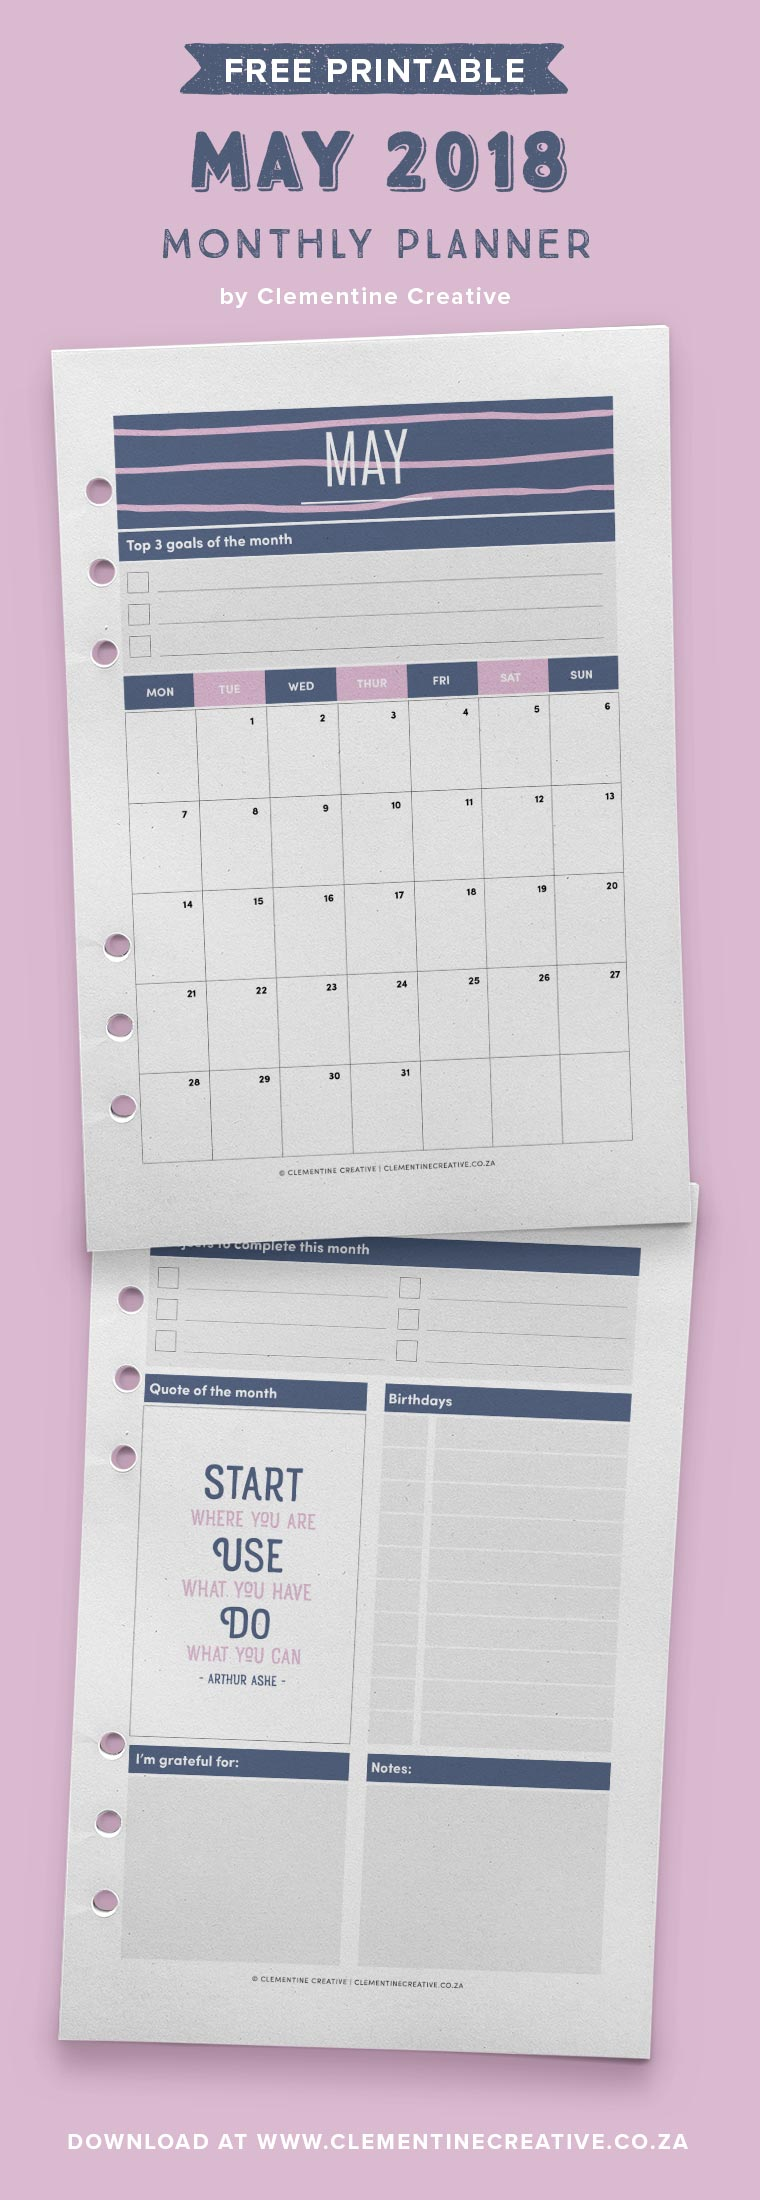 Free printable May 2018 monthly planner pages